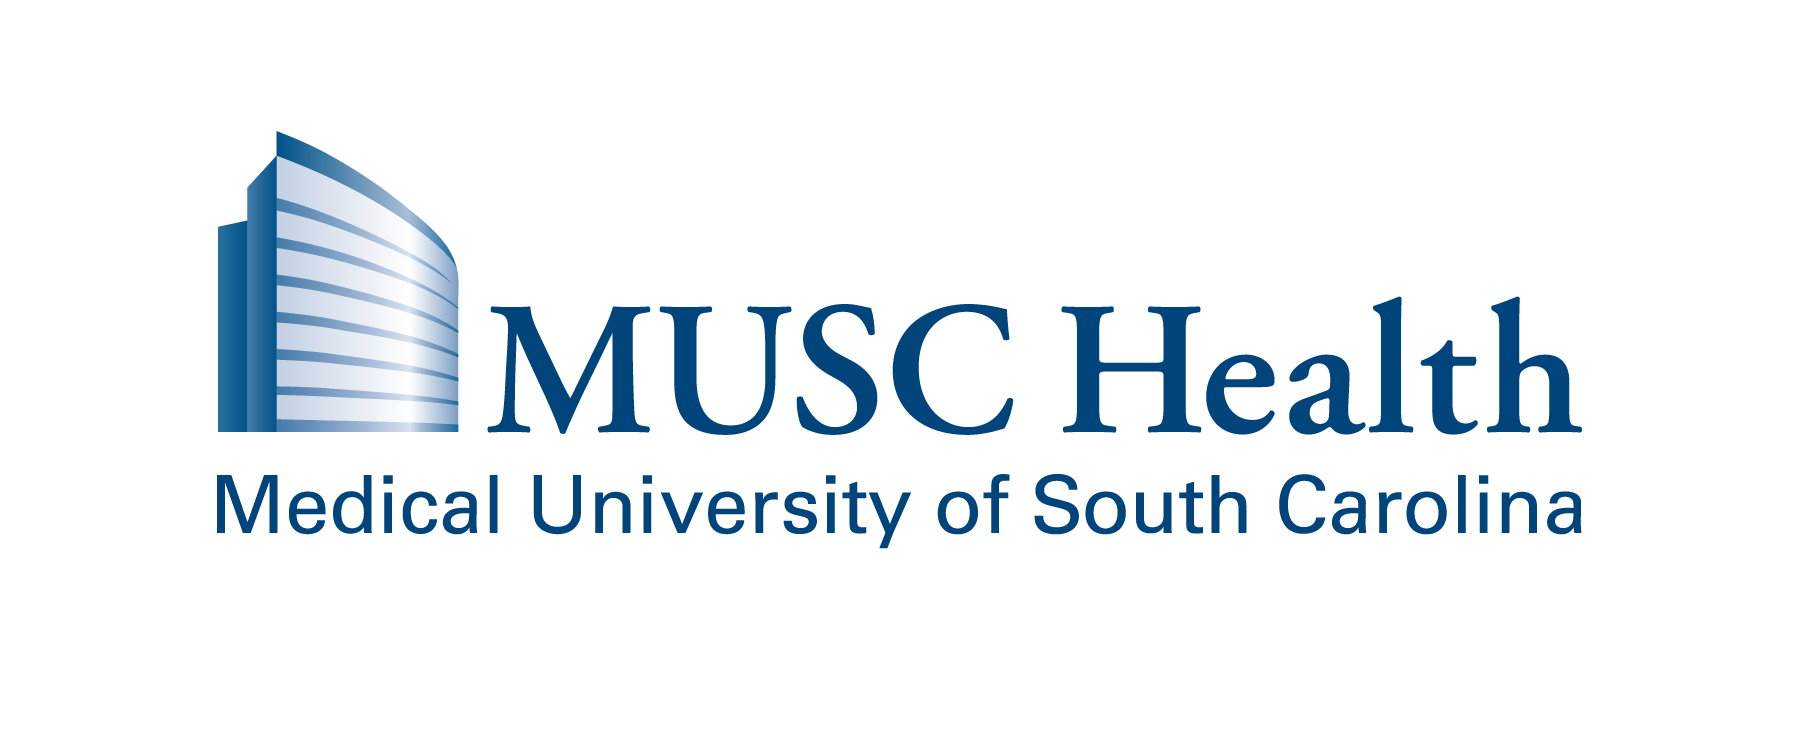 The Medical University of South Carolina